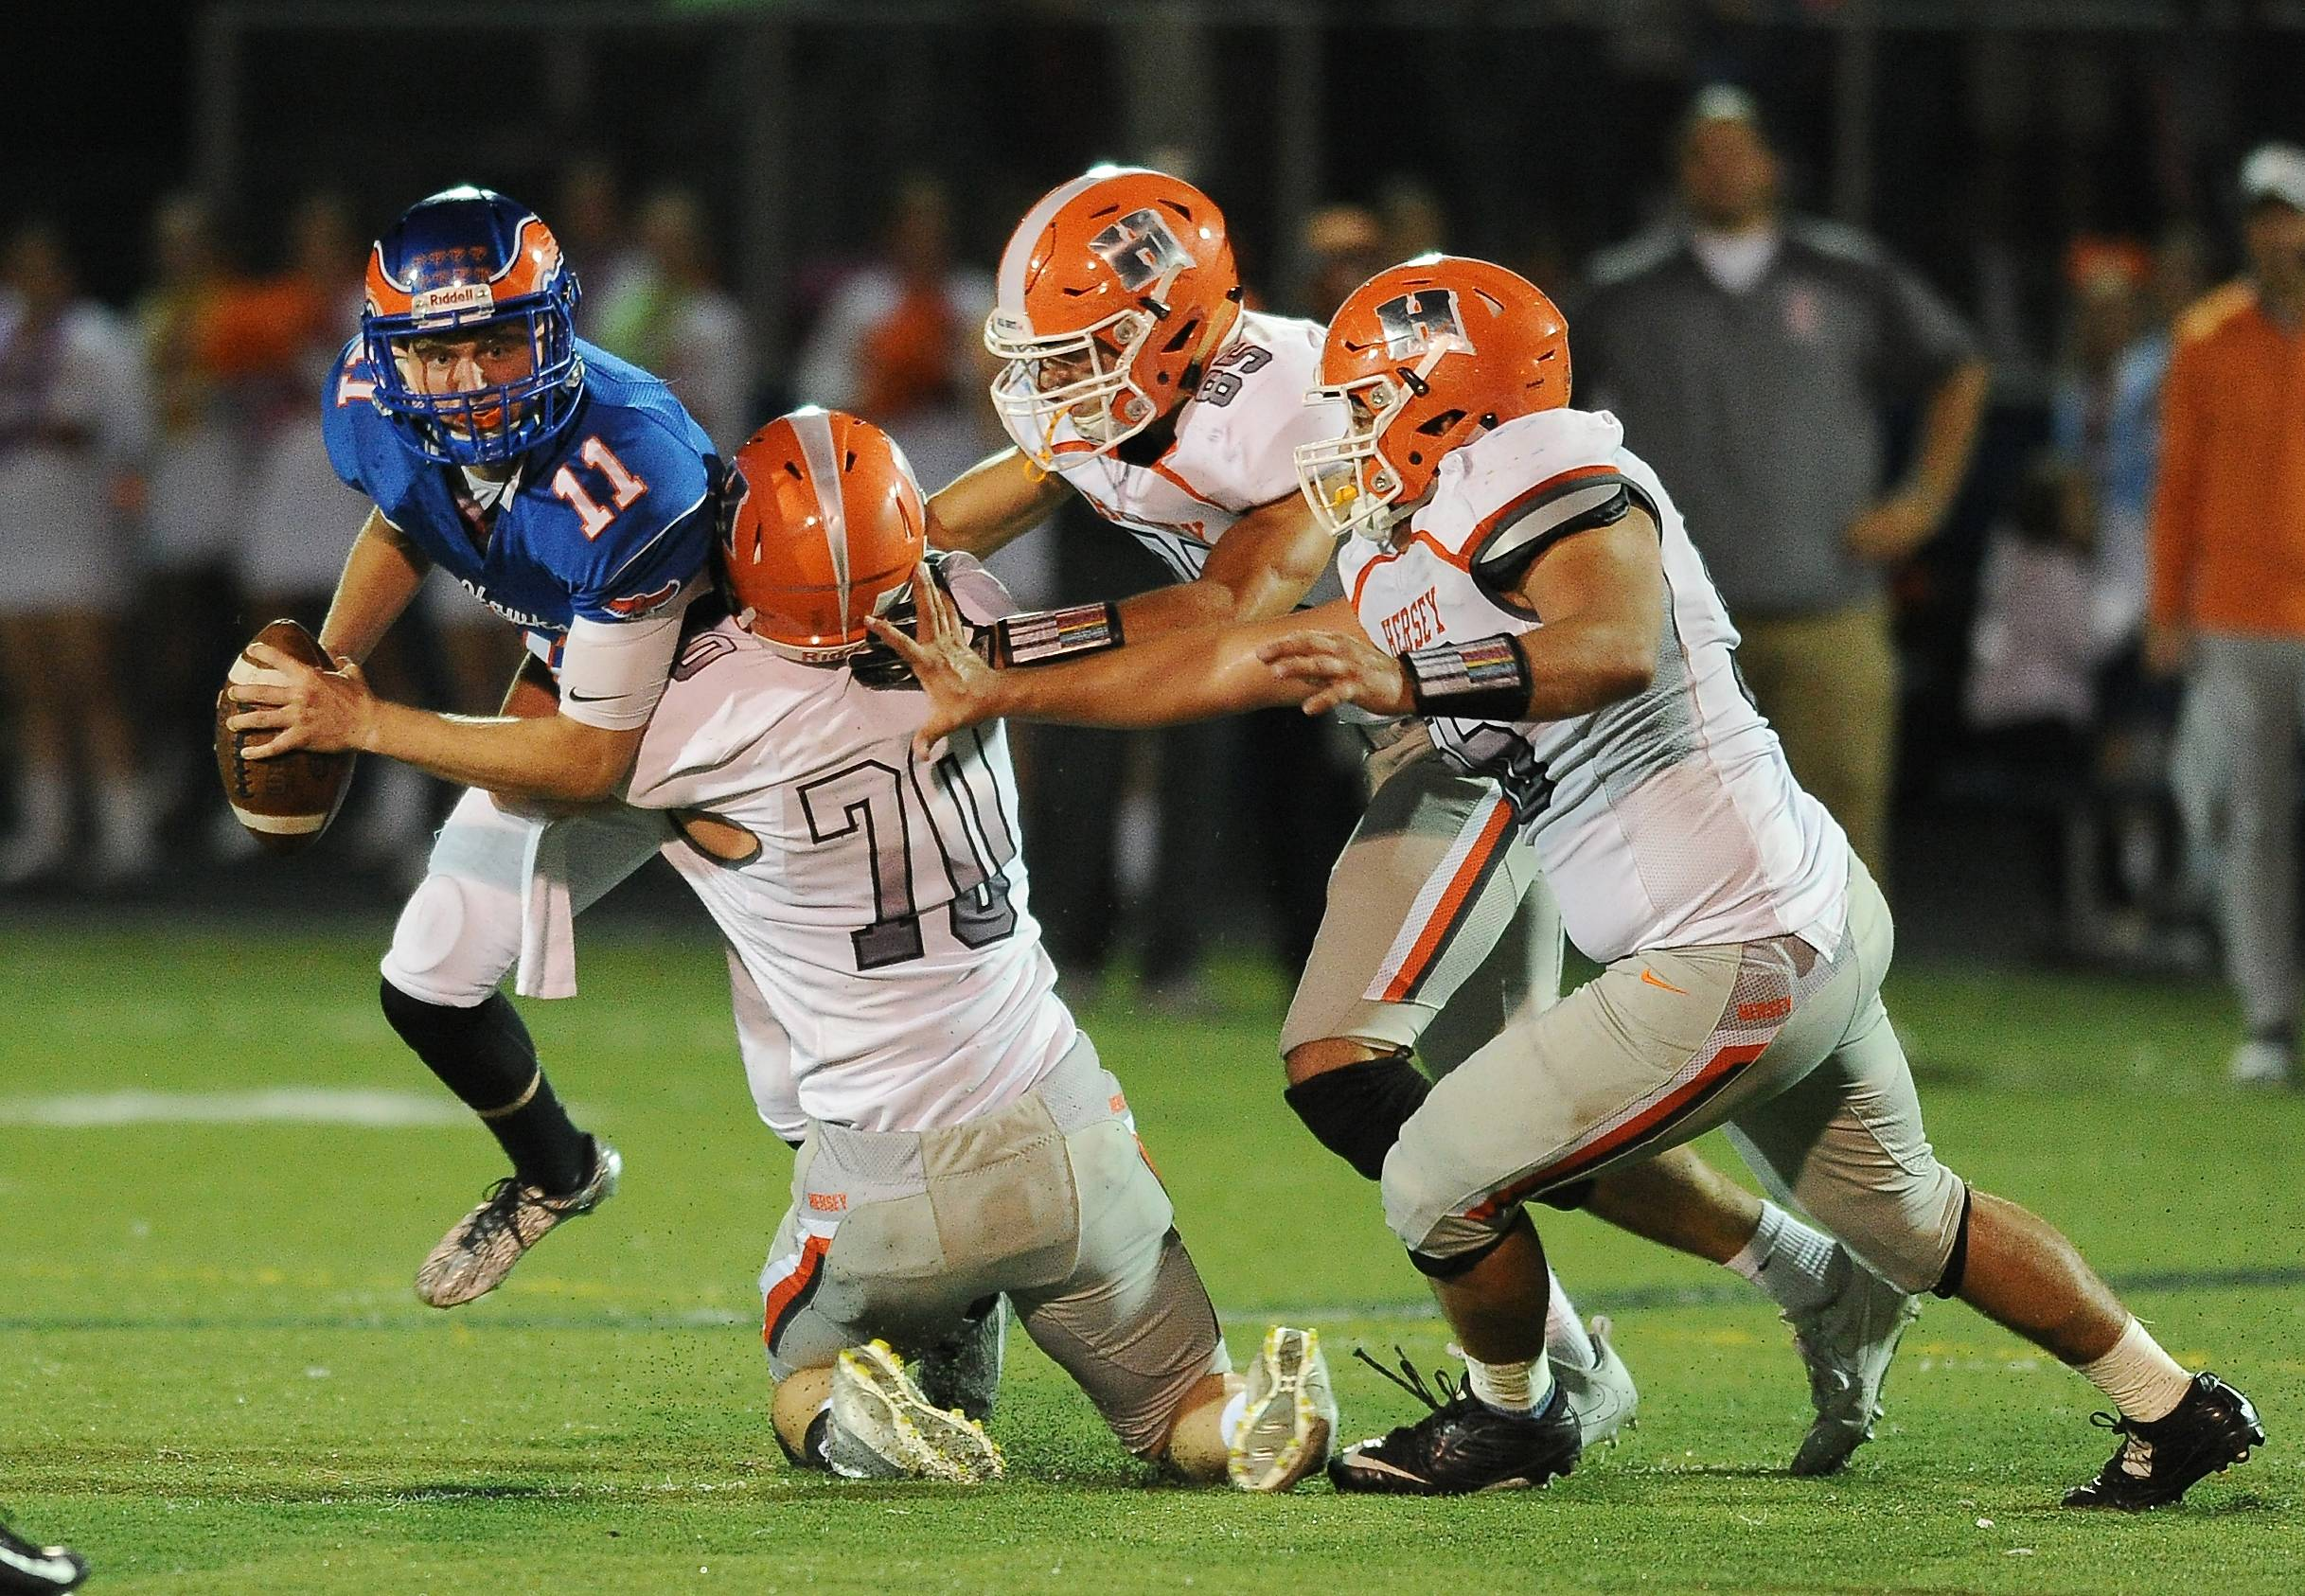 Hoffman Estates quarterback Austin Coalson fights off Hersey defenders in the first half Friday at Hoffman Estates.